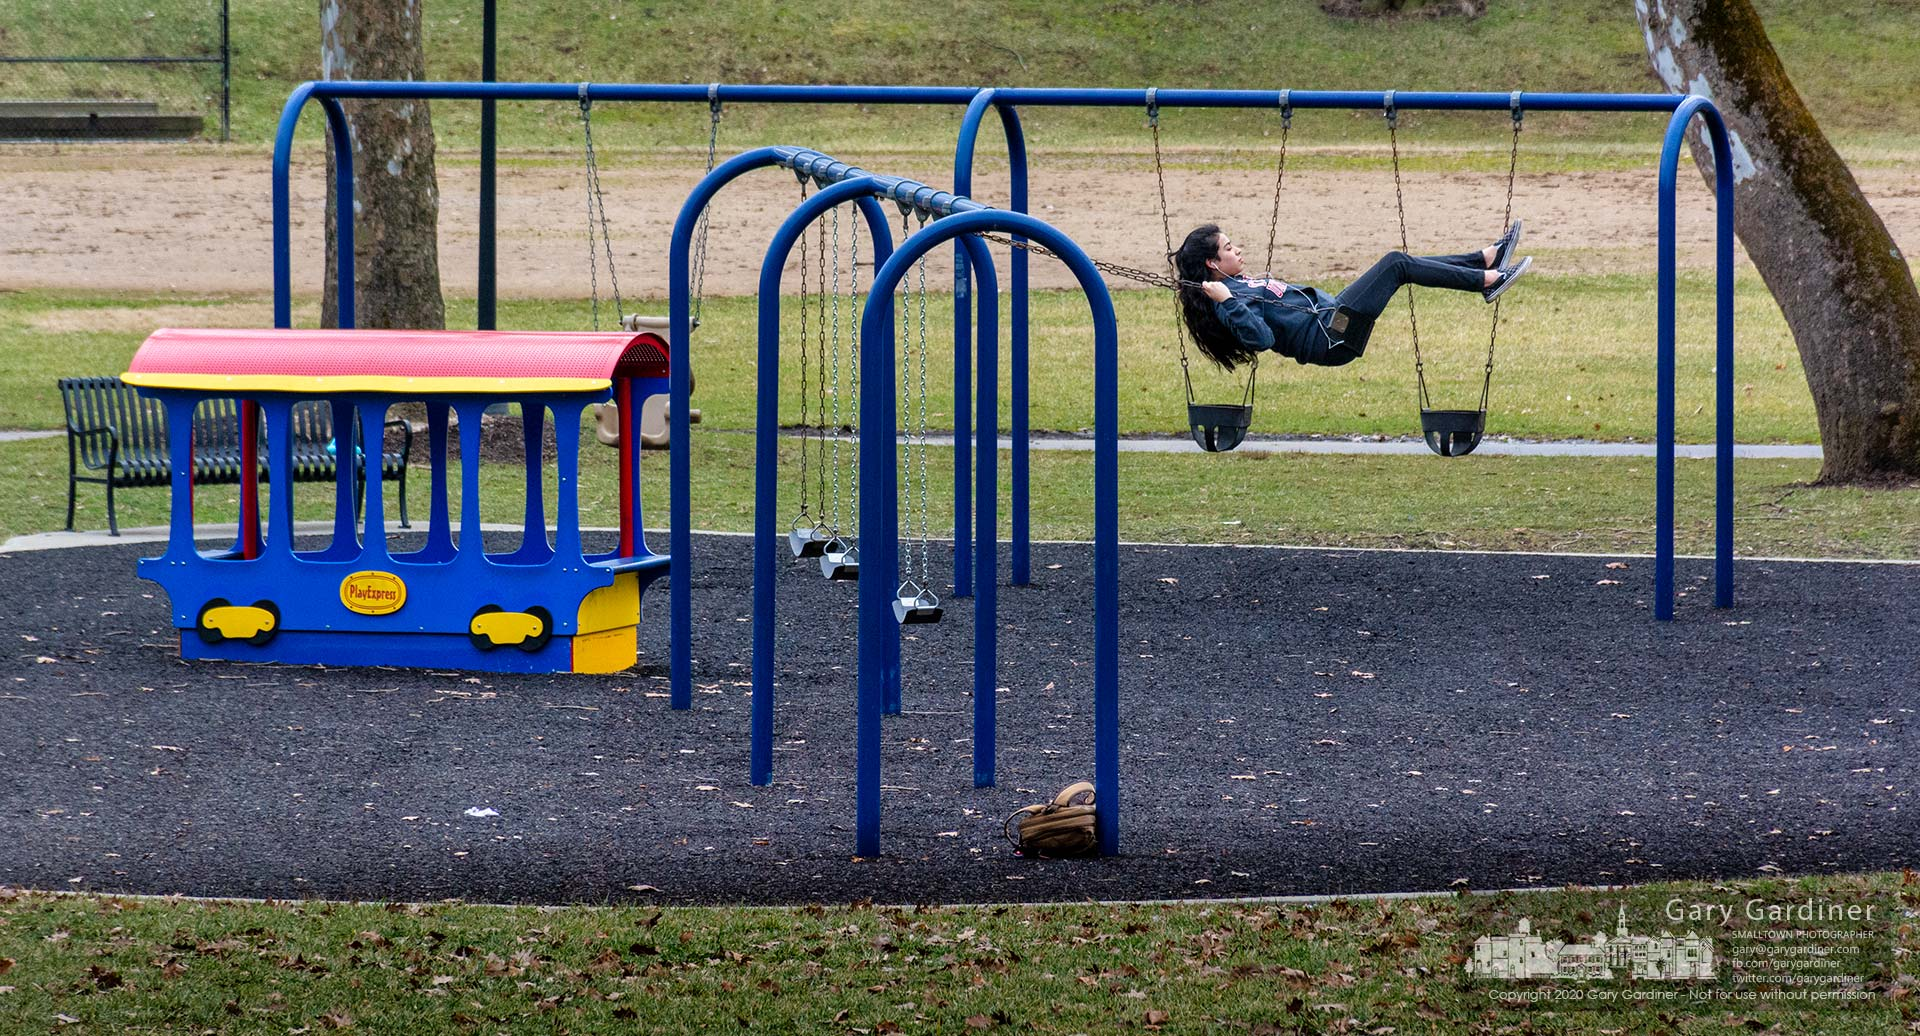 An Otterbein student takes time between classes to enjoy a break from studying with vigorous playtime on a swing at Alum Creek Park on West Main. My Final Photo for Feb. 5, 2020.